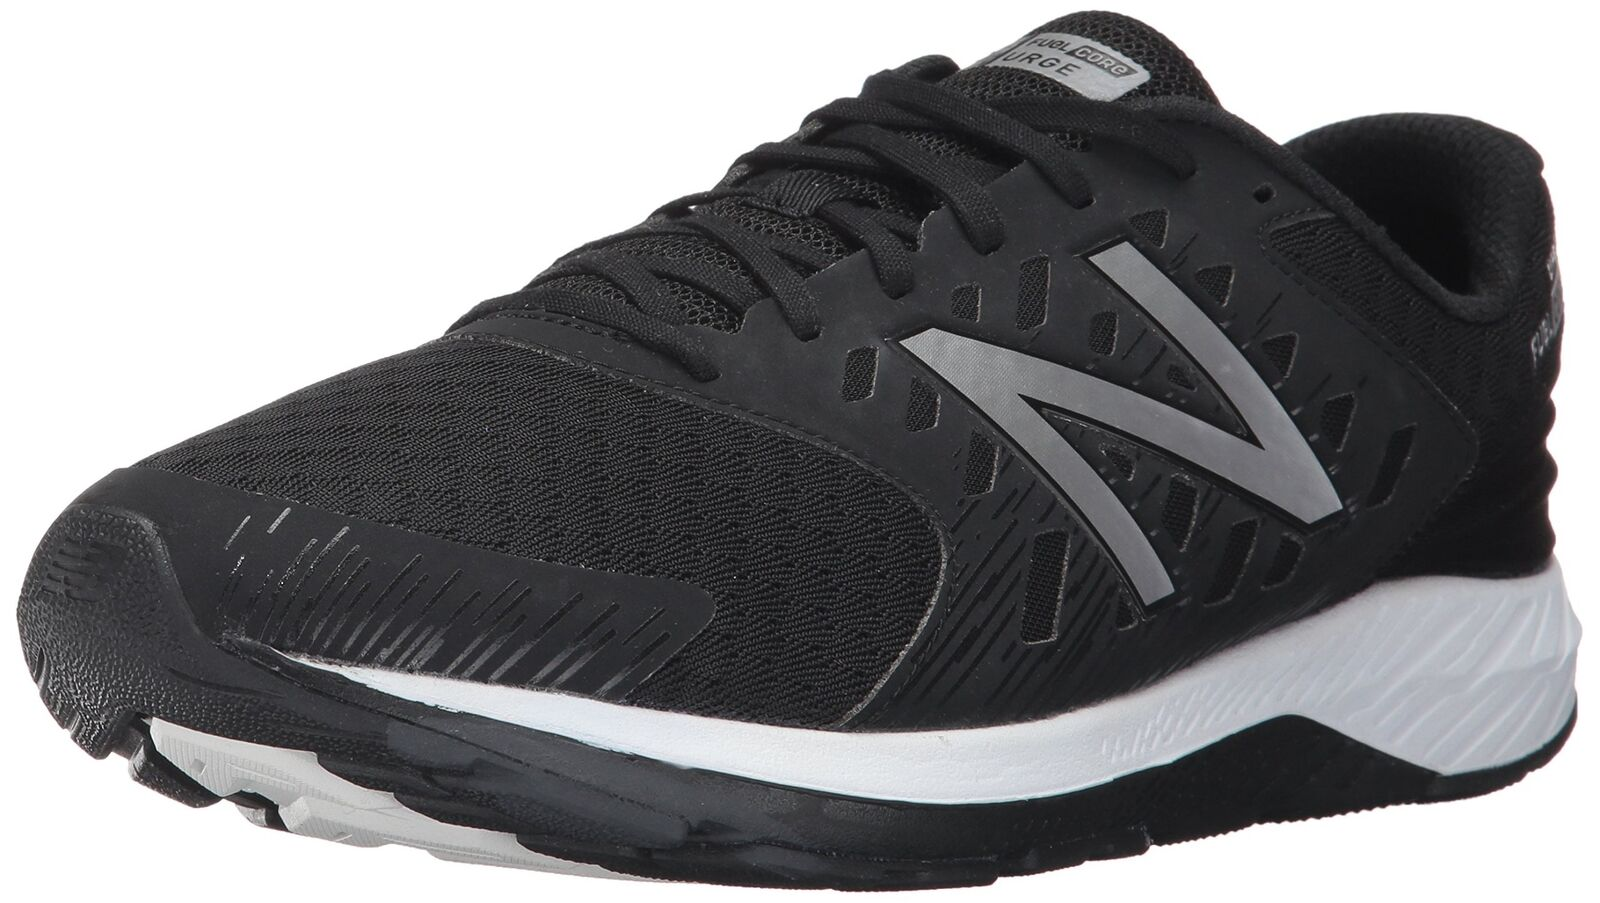 New Balance Men's URGEV2 Running-shoes, Black Metallic Silver, 10 D US